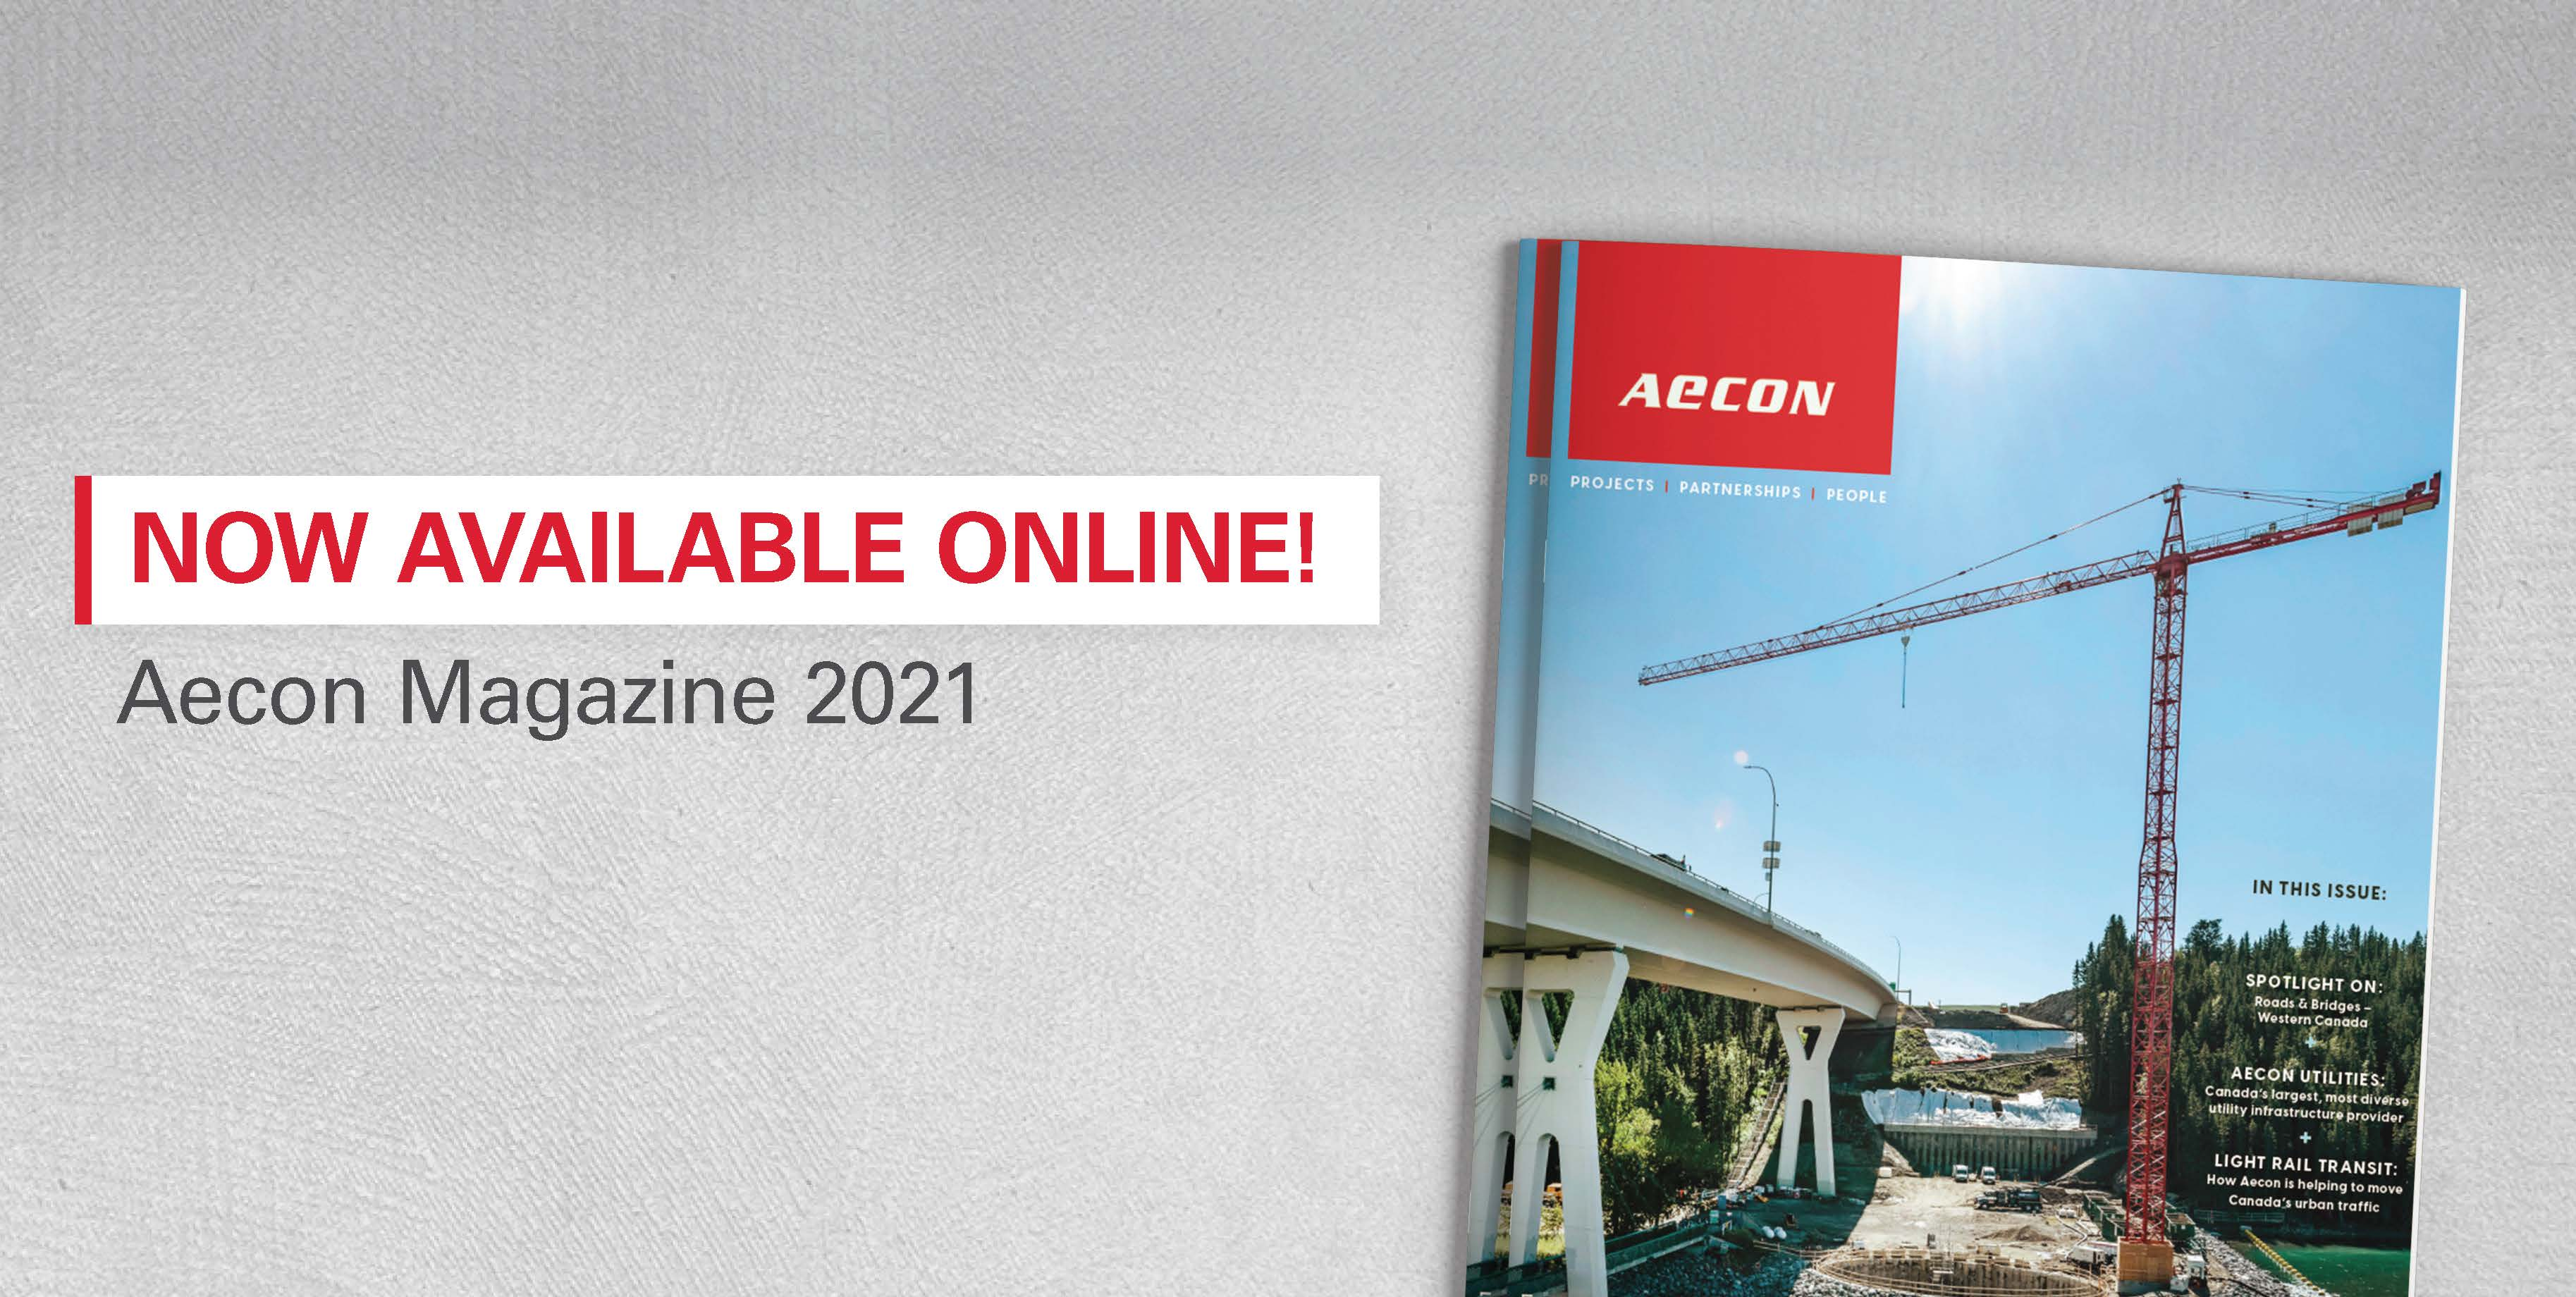 Aecon Magazine 2021 Slider Image